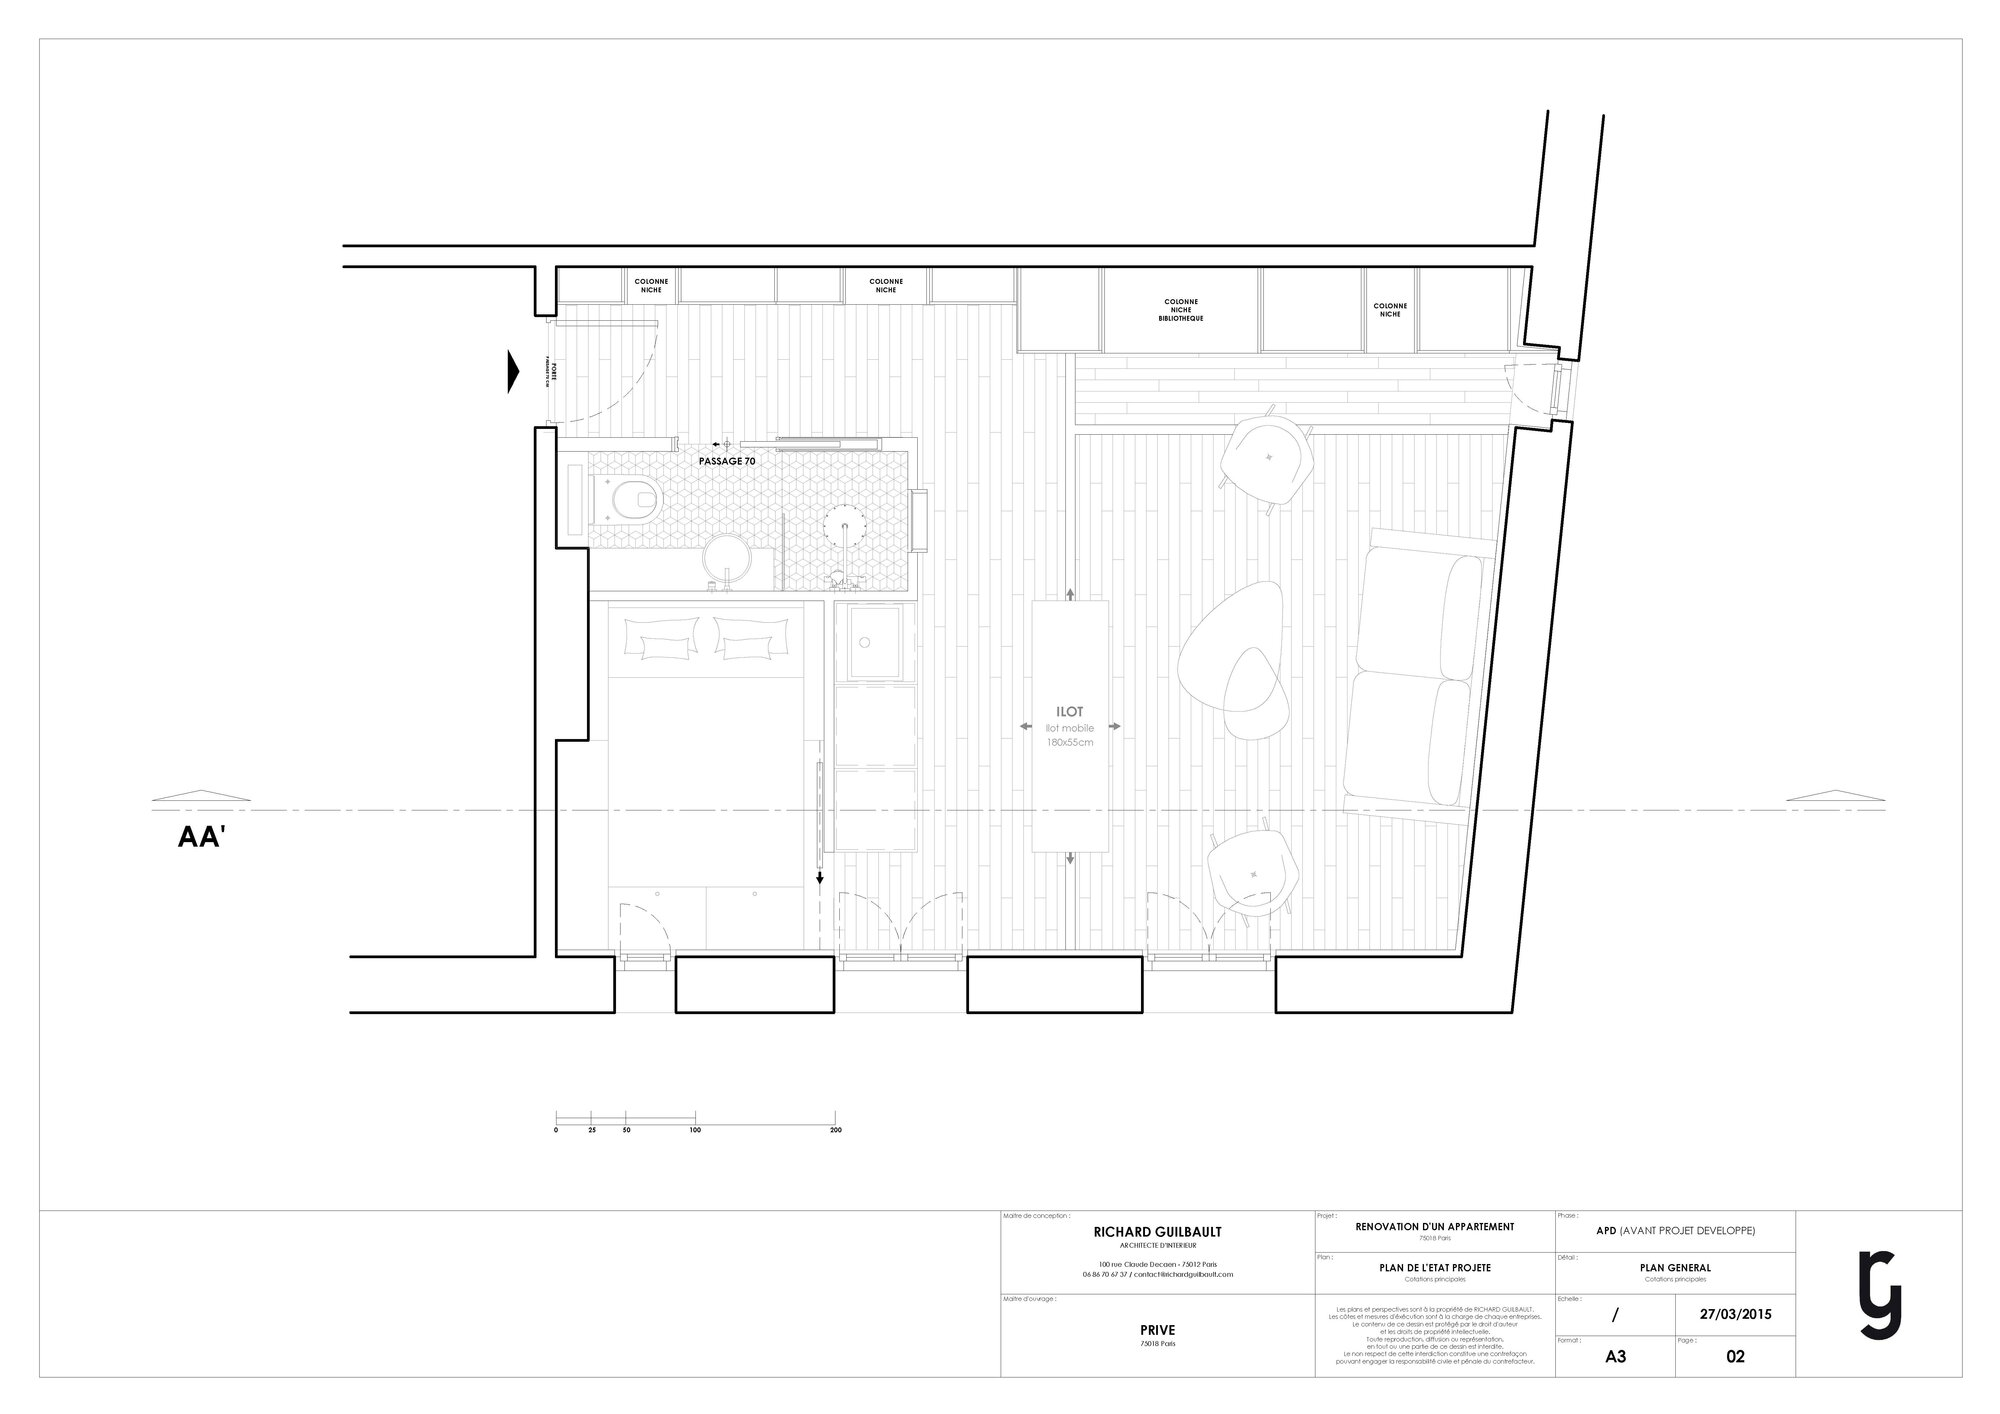 Flat in Paris - Small Apartment - Richard Guilbault - France - Floor Plan - Humble Homes